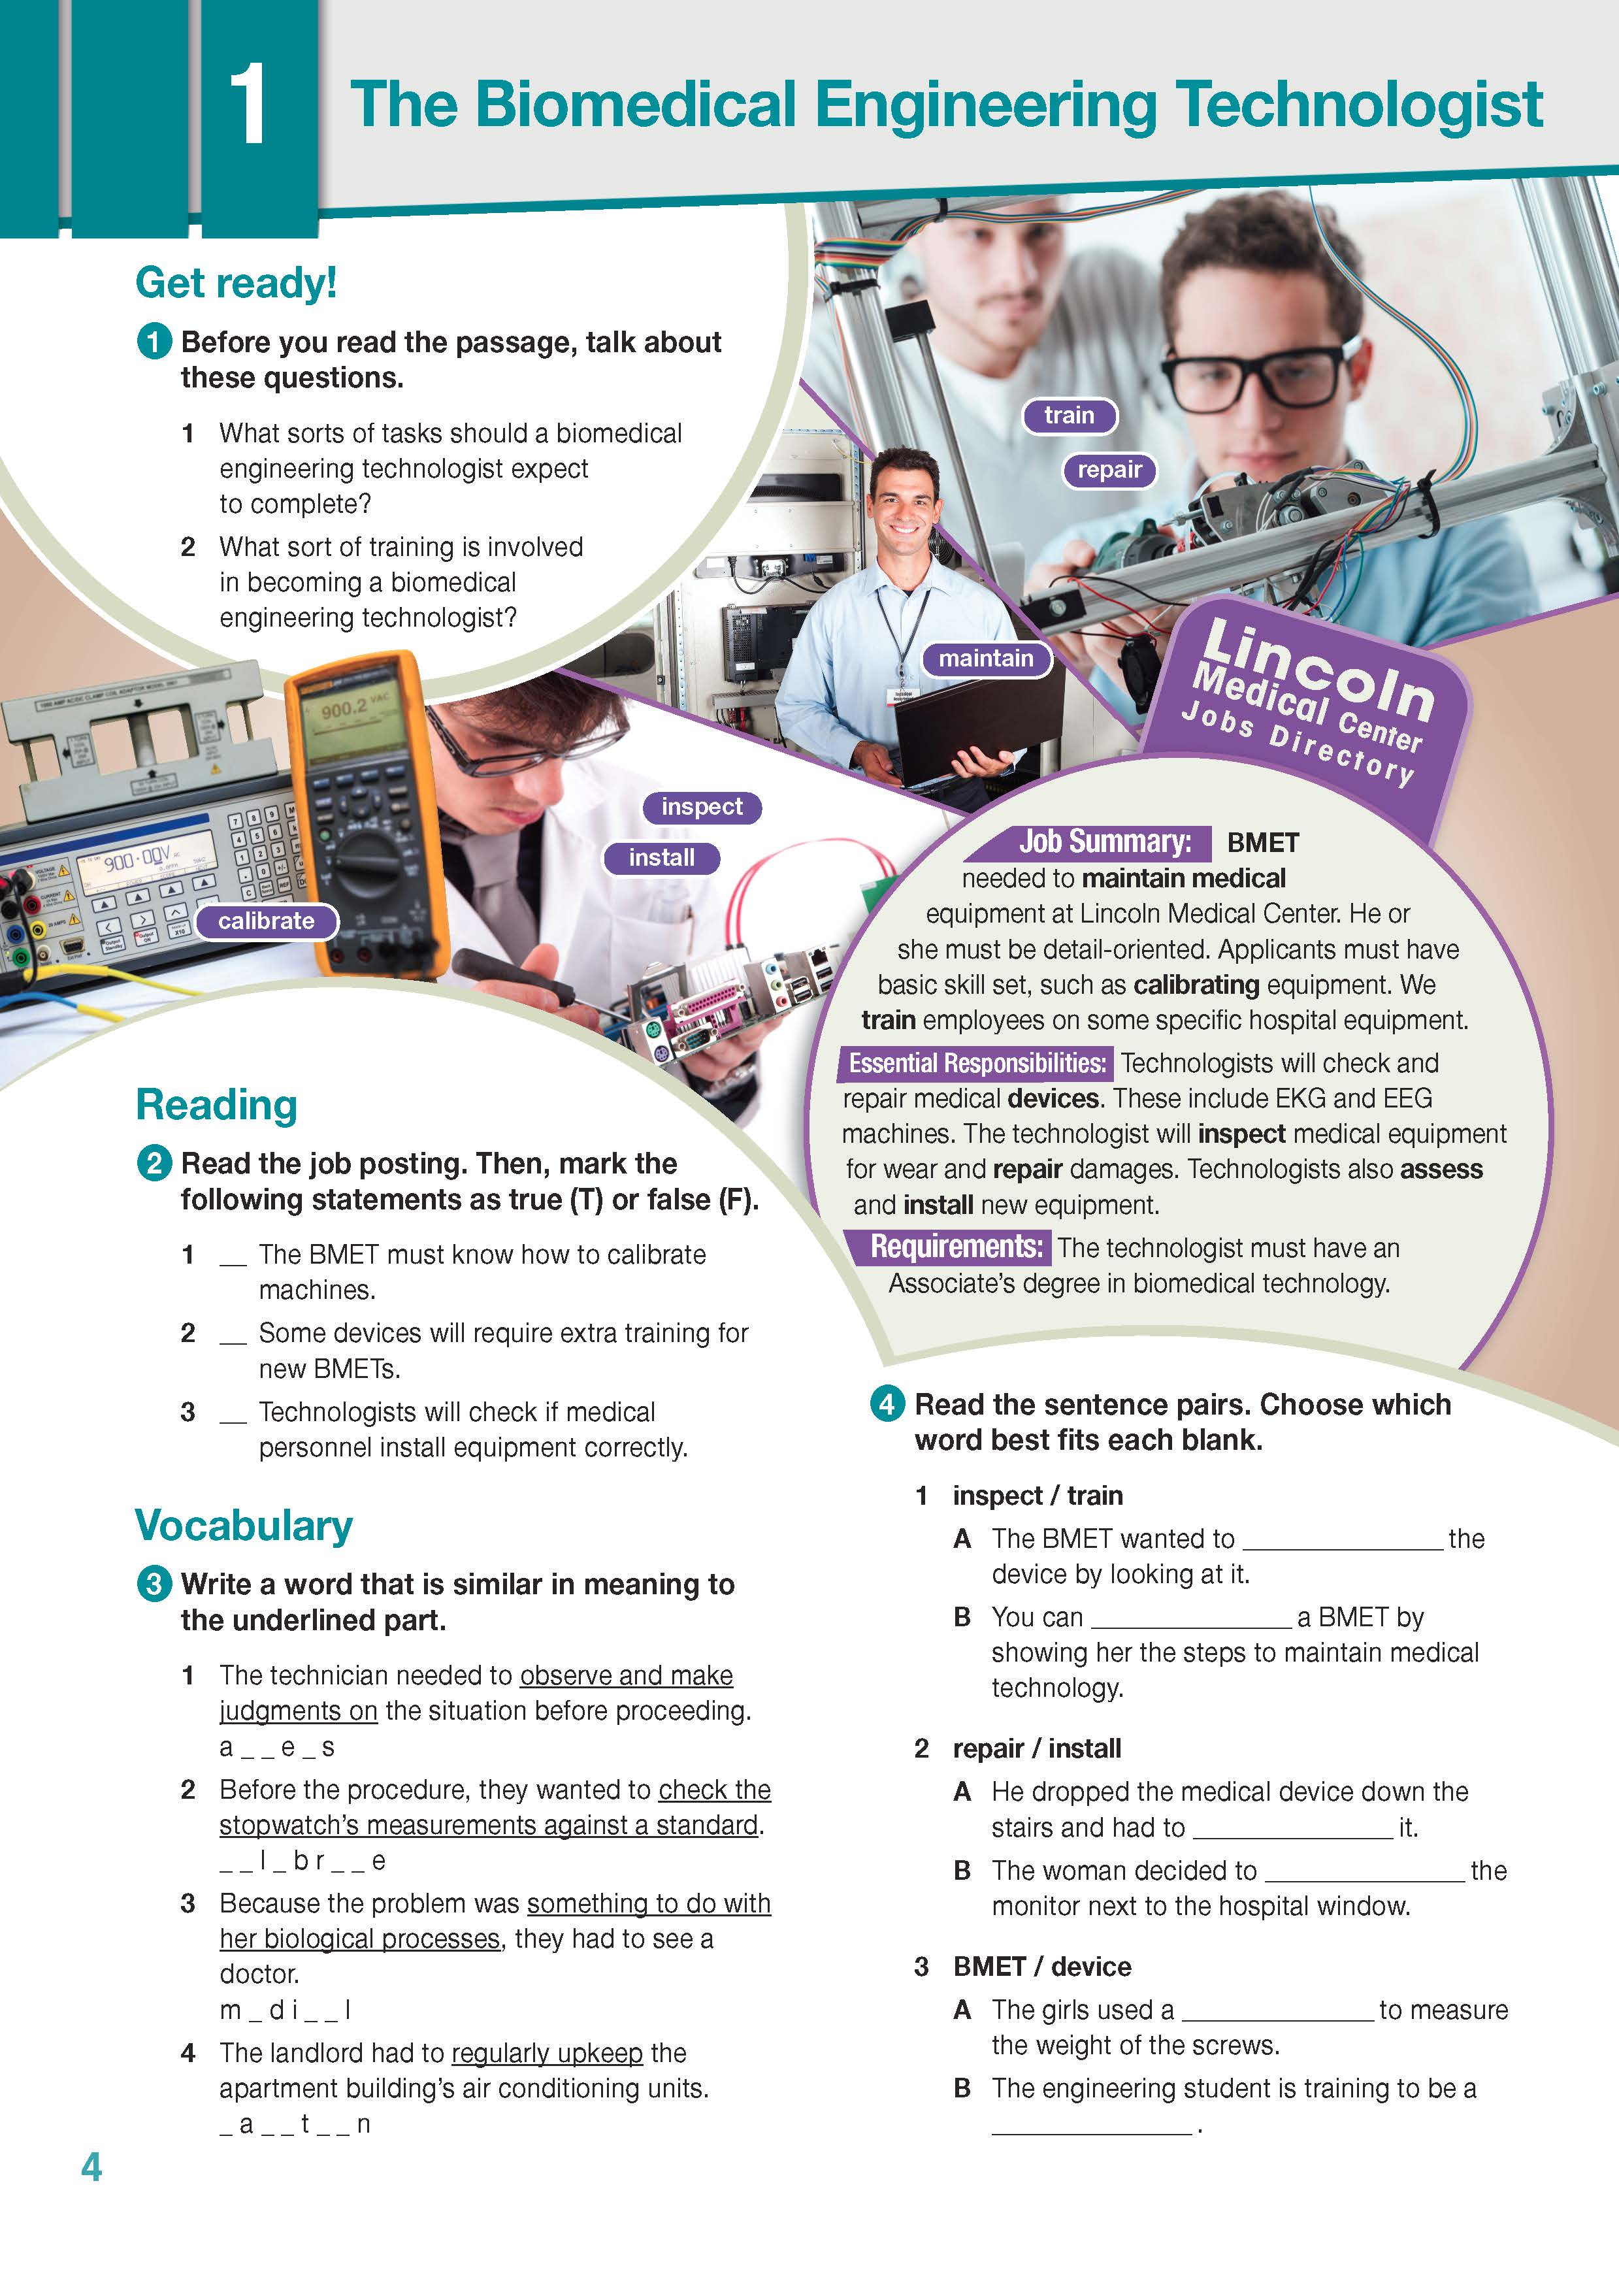 ESP English for Specific Purposes - Career Paths: Medical Equipment Repair - Sample Page 1